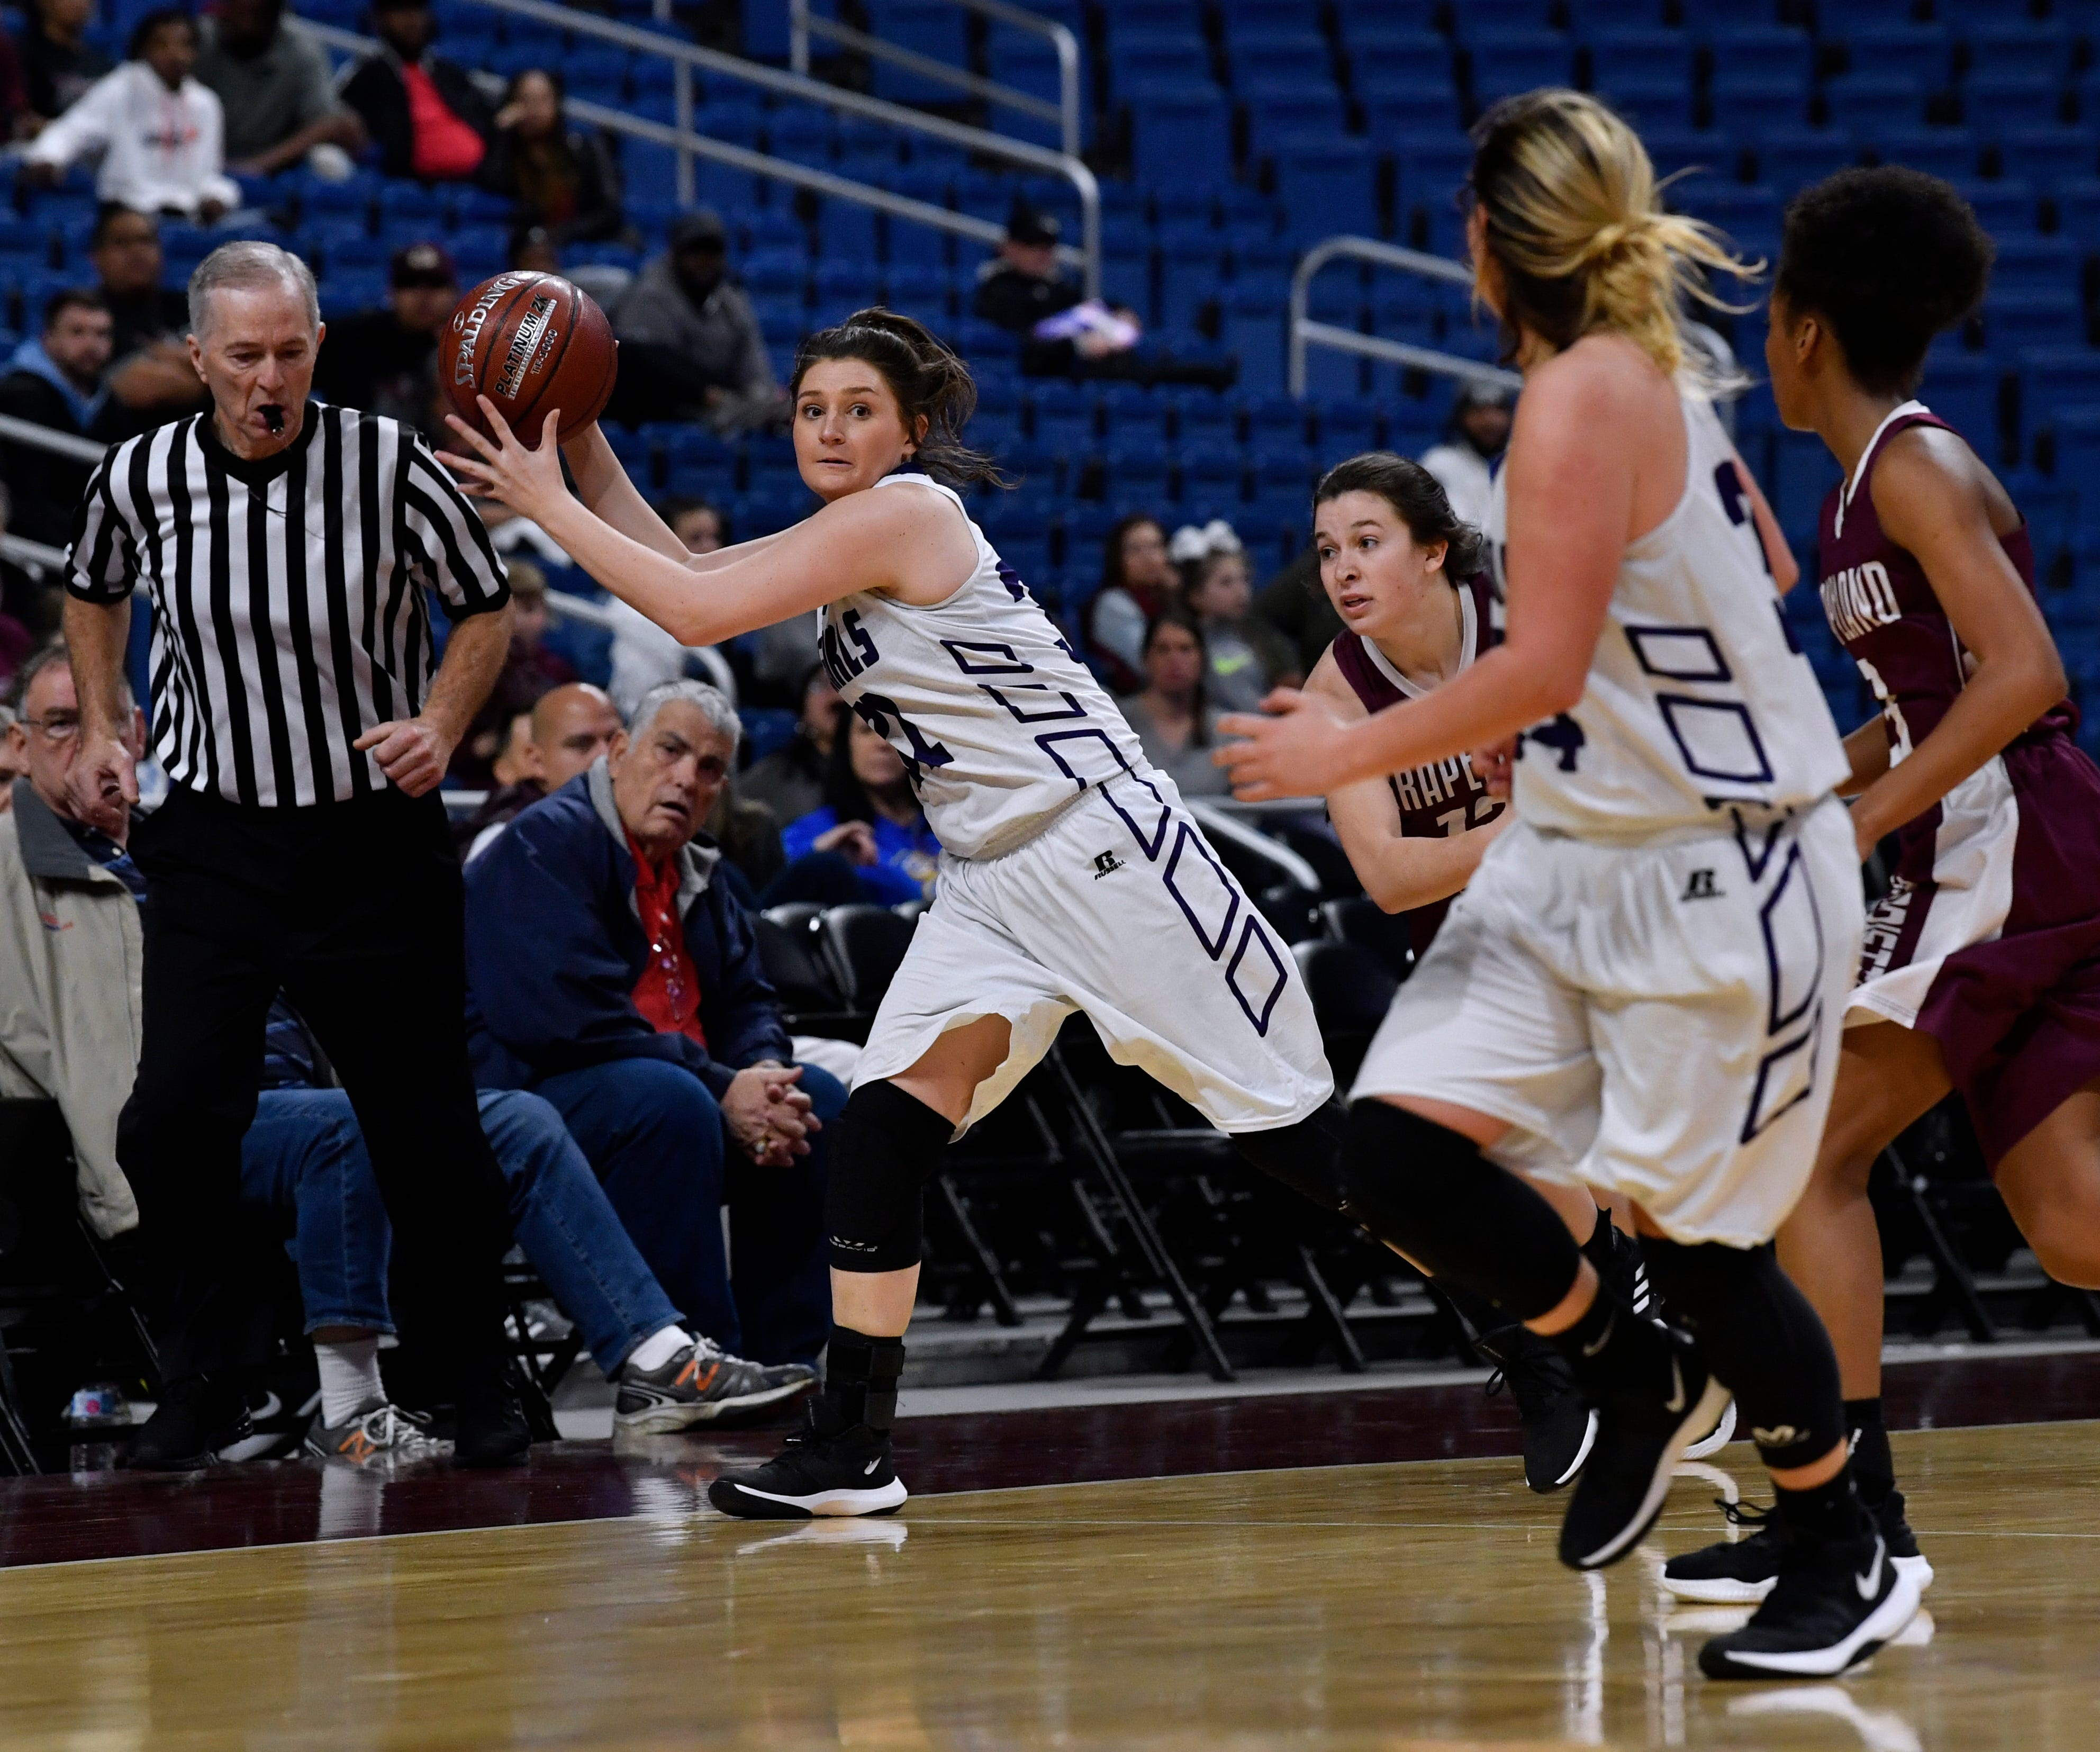 Cowgirls forward Tessa Guice looks up to pass the ball to Mason teammate Jesse Armstrong during Friday's UIL Class 2A girls state basketball semifinal against Grapeland at the Alamodome in San Antonio March 1, 2019.